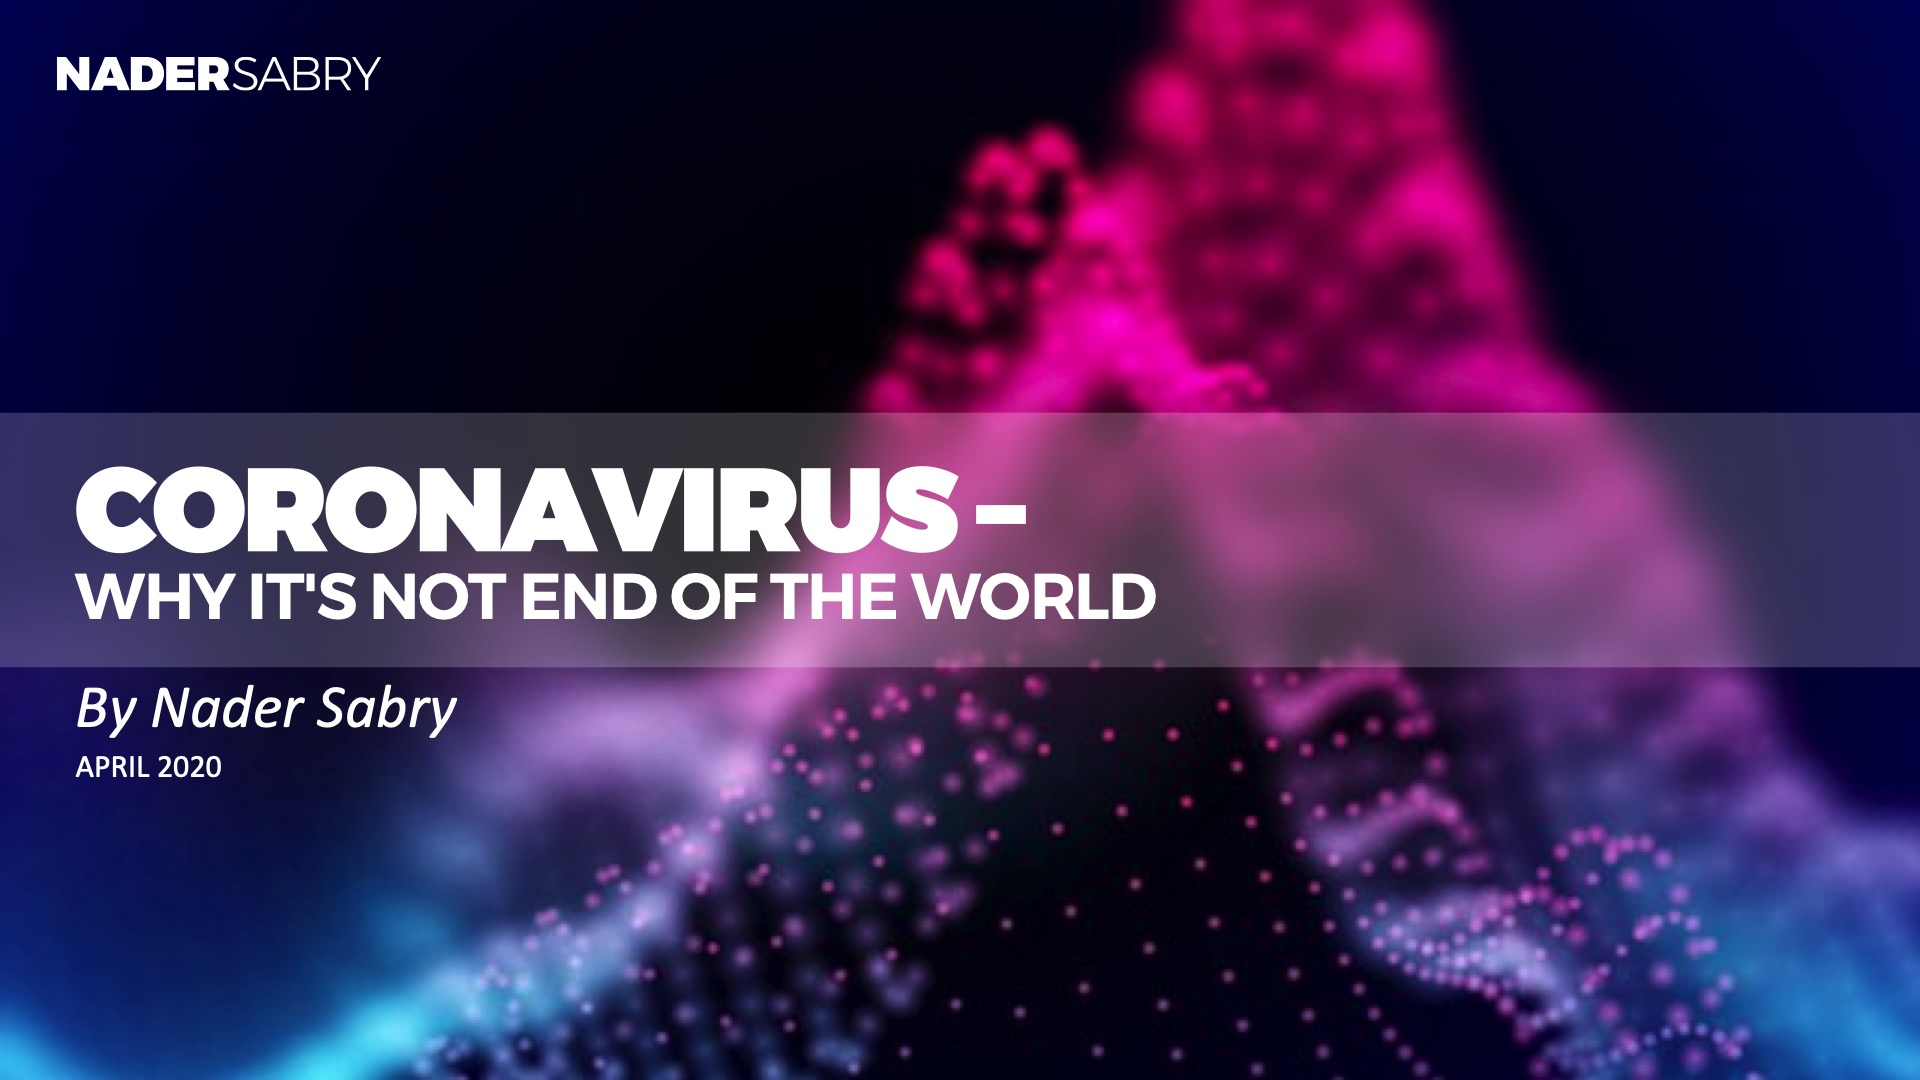 Coronavirus is not end of the world